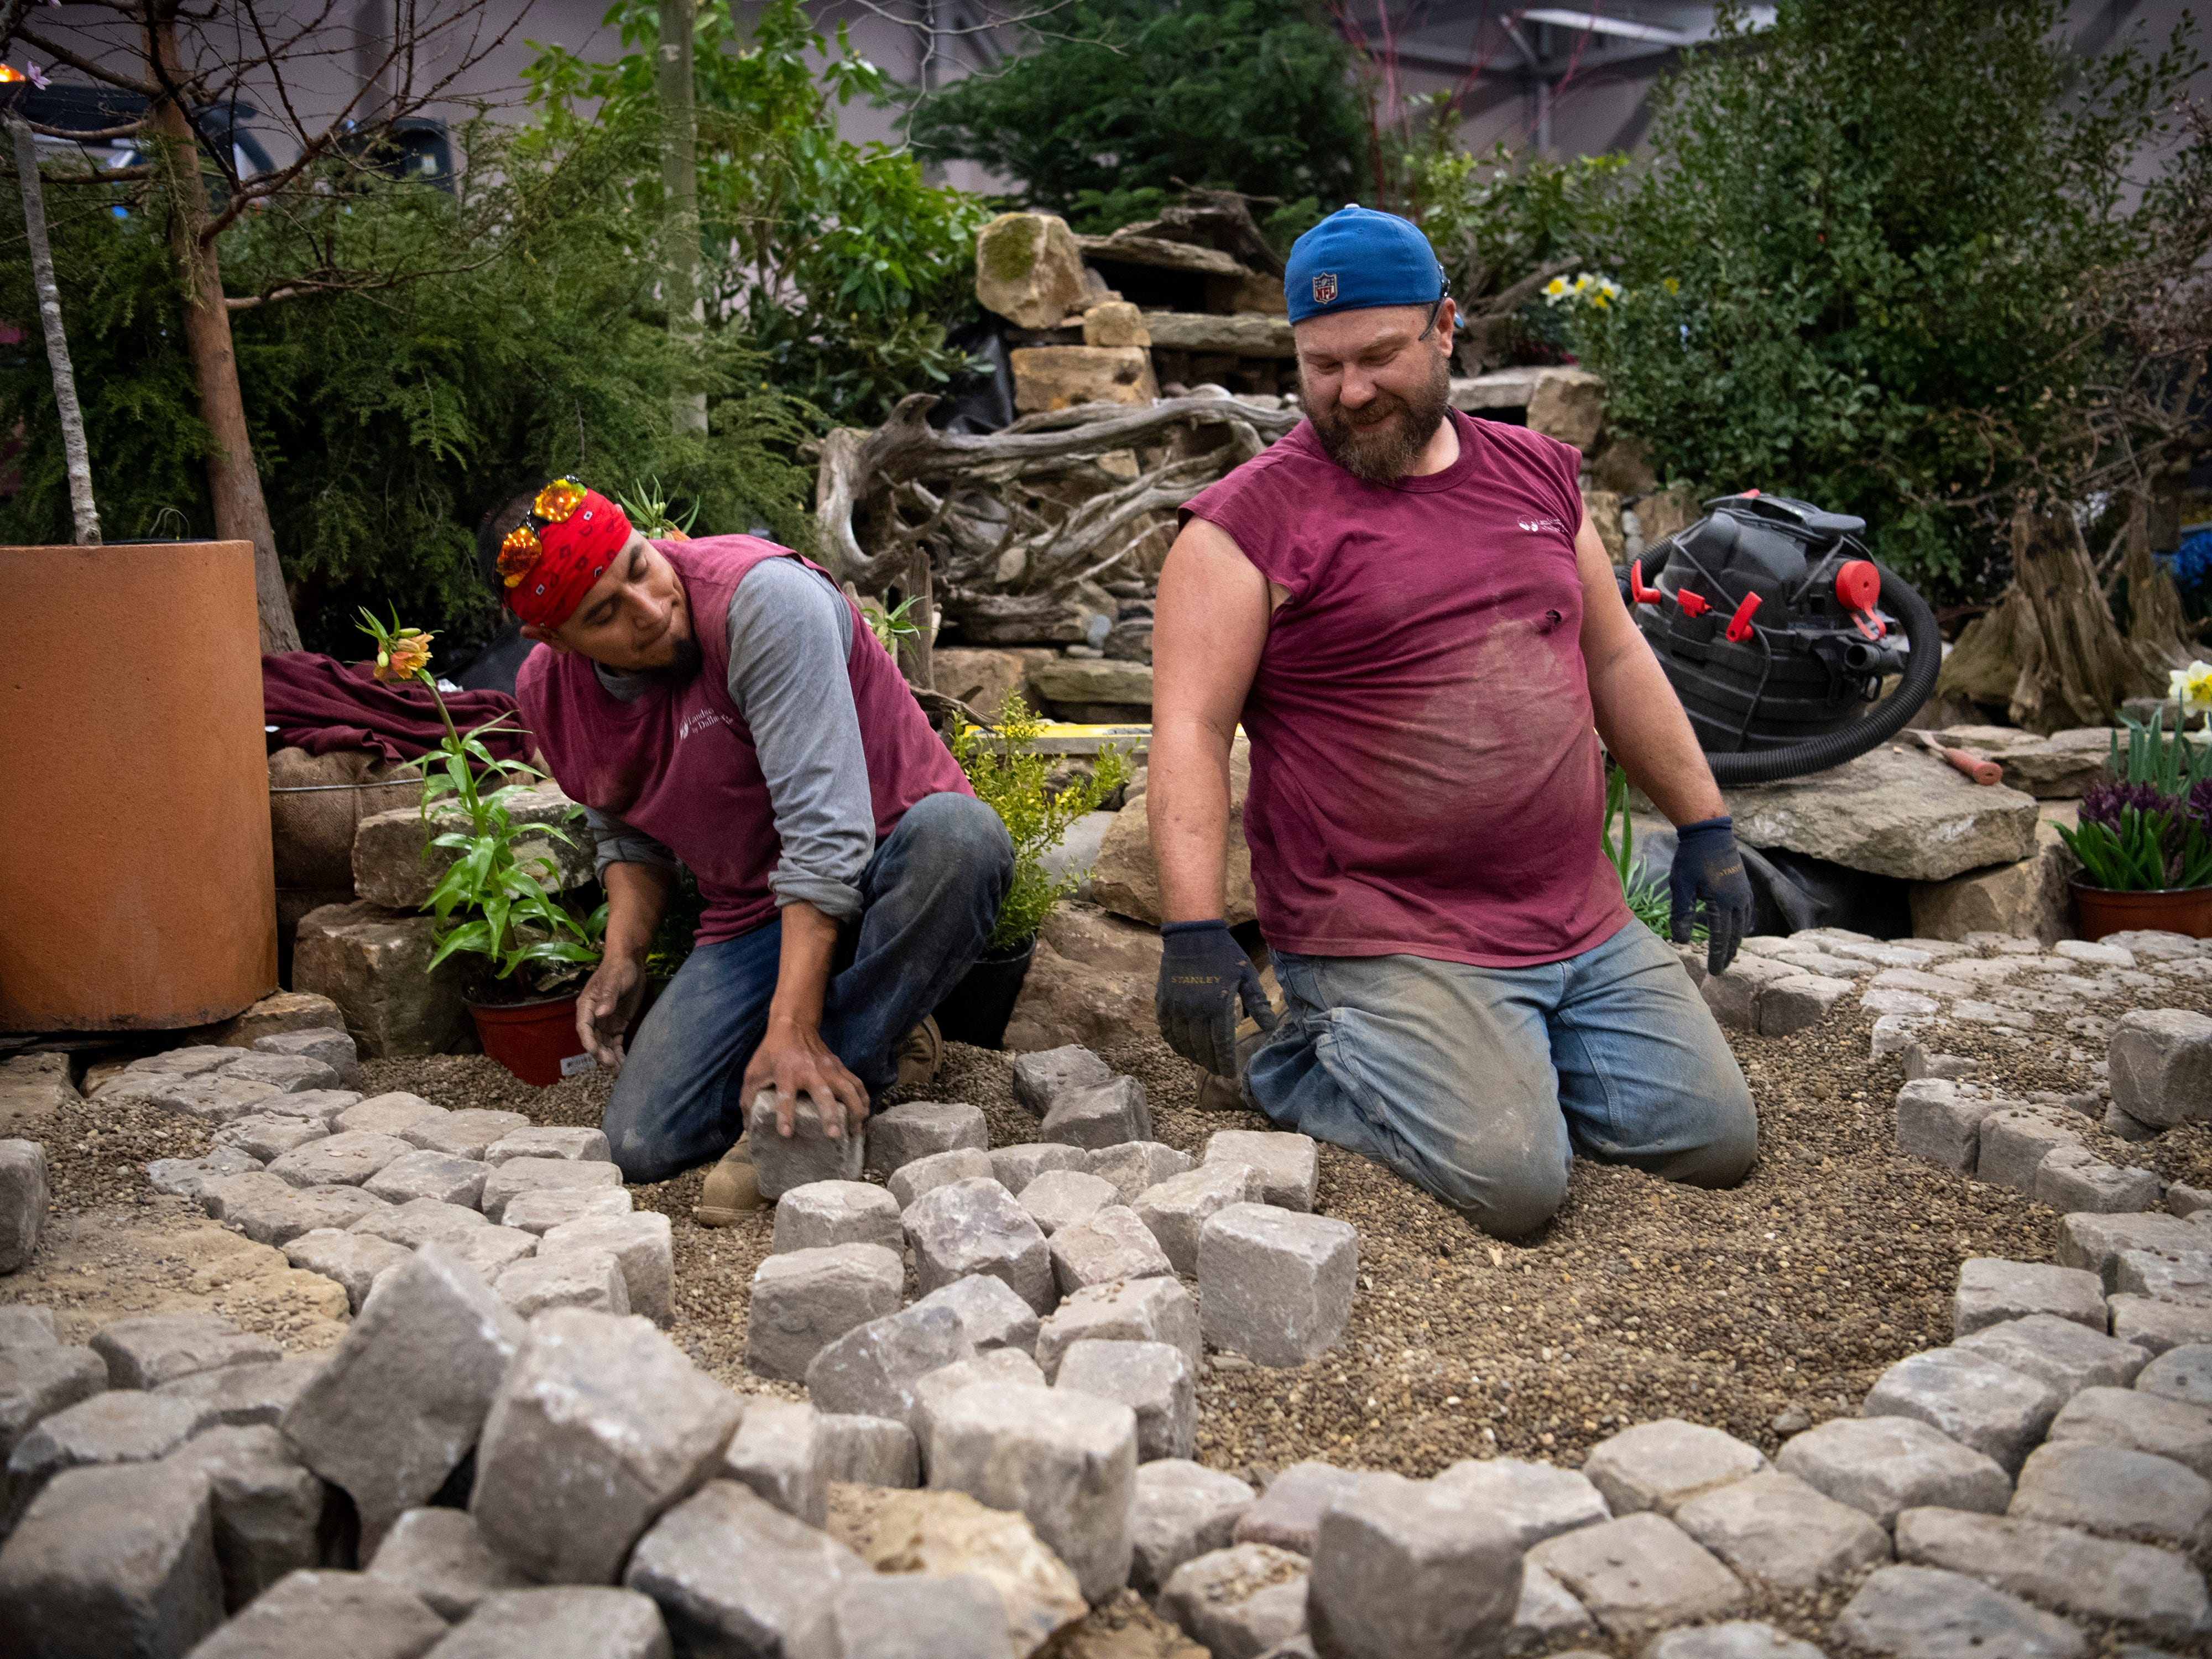 """Frederico Gabino, left, and Kelly Wright, employees with Landscapes by Dallas Foster, lay cobblestones in preparation for the 72nd annual Heritage Federal Credit Union Home Show at Old National Events Plaza Thursday afternoon. The home show runs Saturday through Sunday and costs $5 at the door. Pete Nelson of Animal Planet's """"Treehouse Masters"""" show, and Clint Harp of HGTV's """"Fixer Upper"""" and """"DIY's Wood Work"""", will appear at the event."""